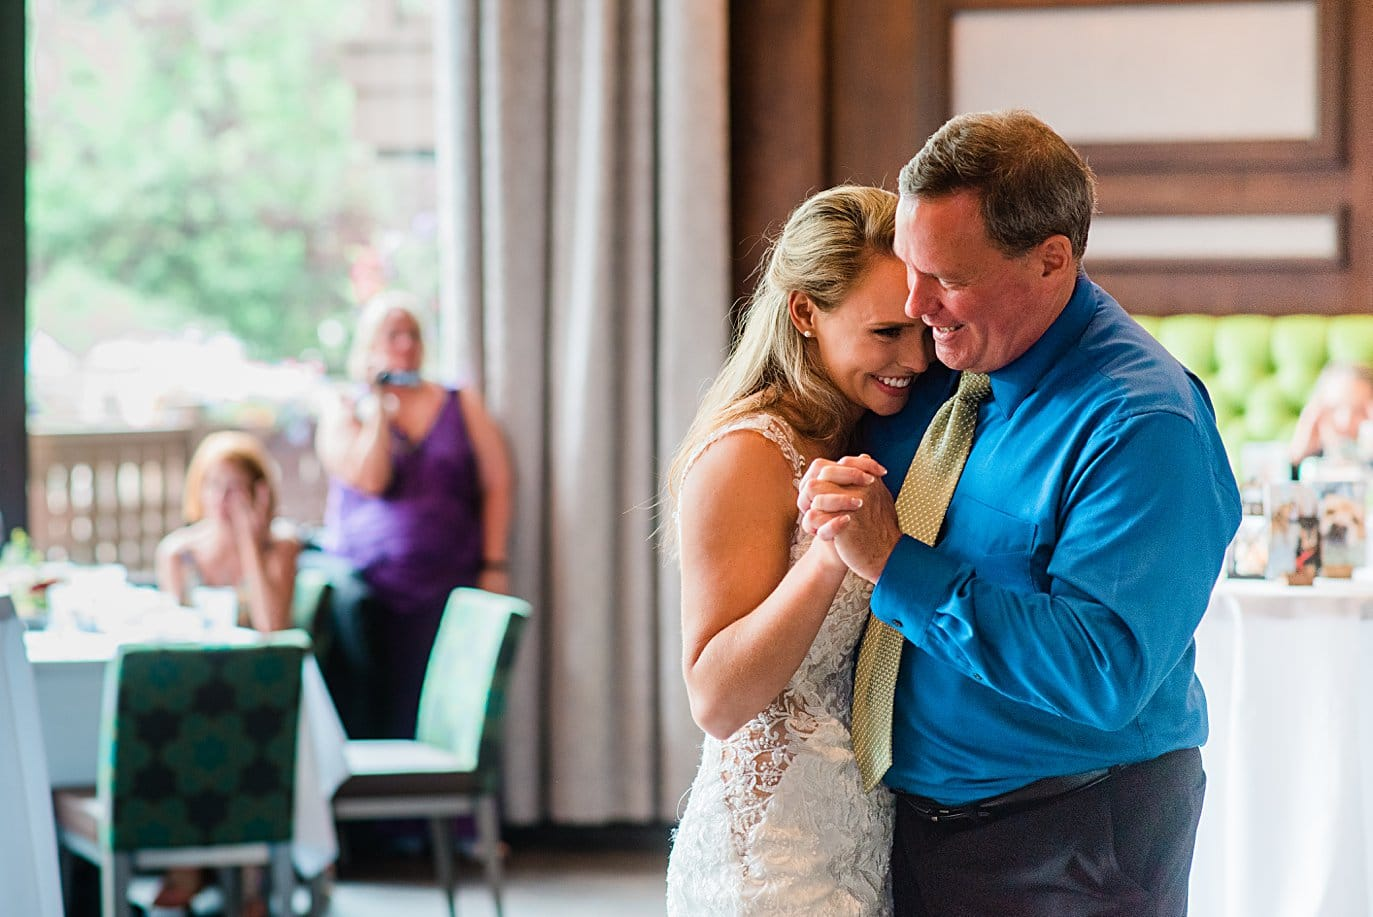 father daughter dance at summer wedding reception at Vail Manor Lodge wedding by Aspen wedding photographer Jennie Crate